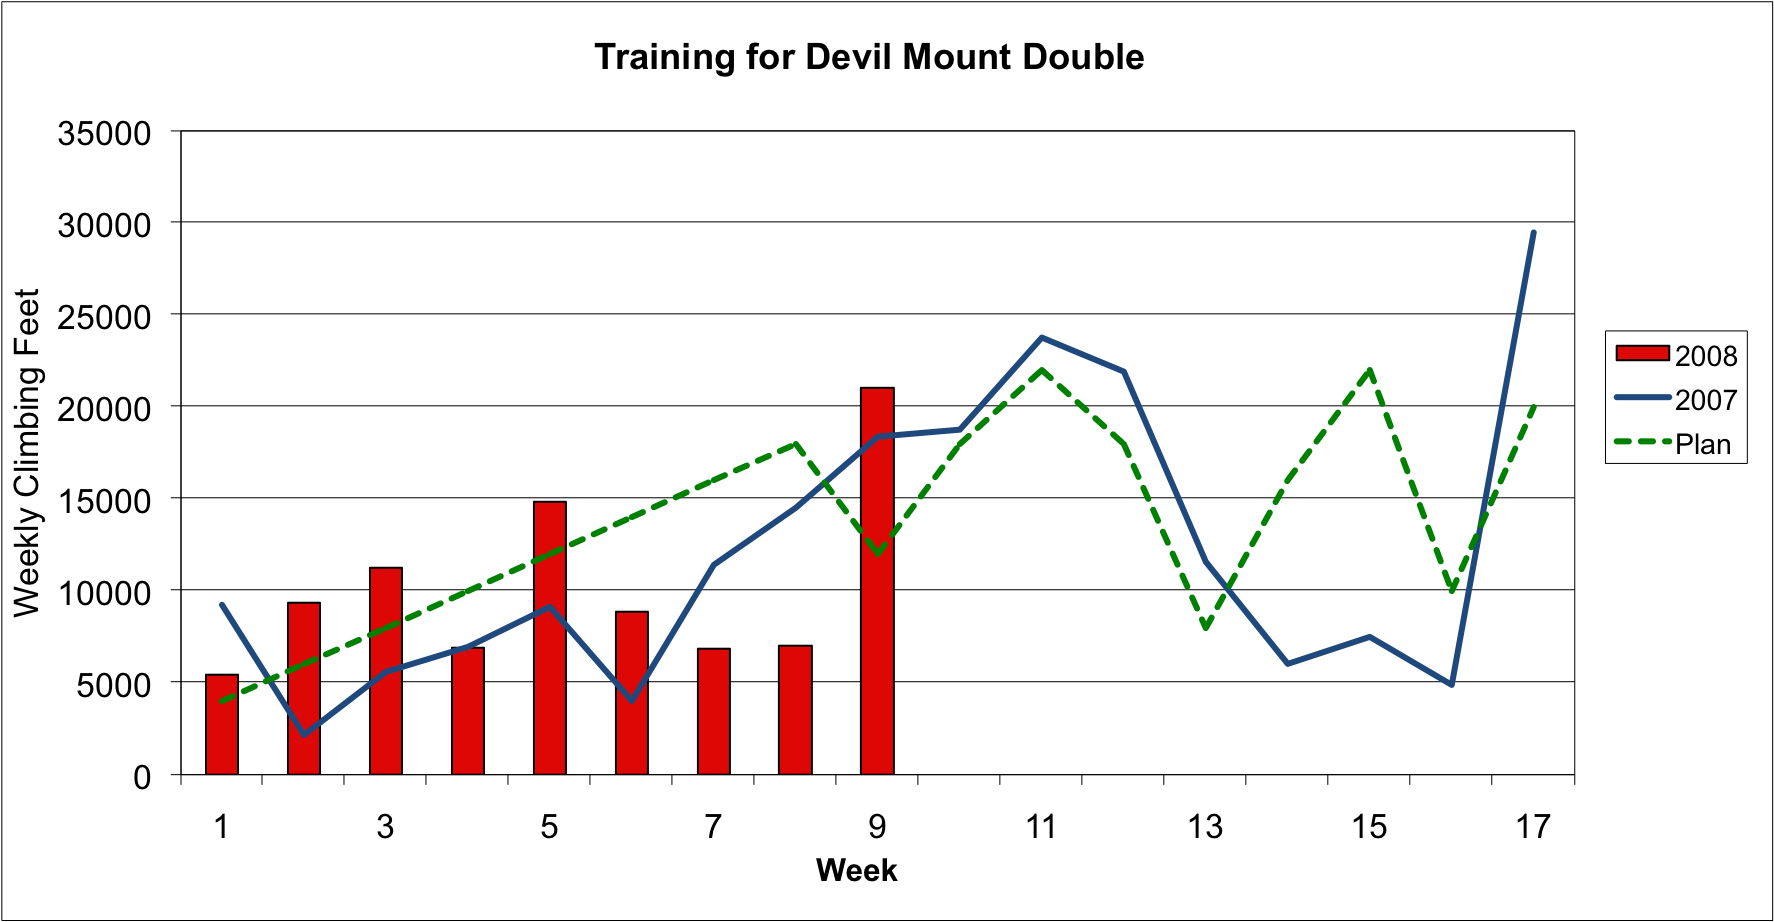 DMD Training Weekly Climbing Feet through Week 9